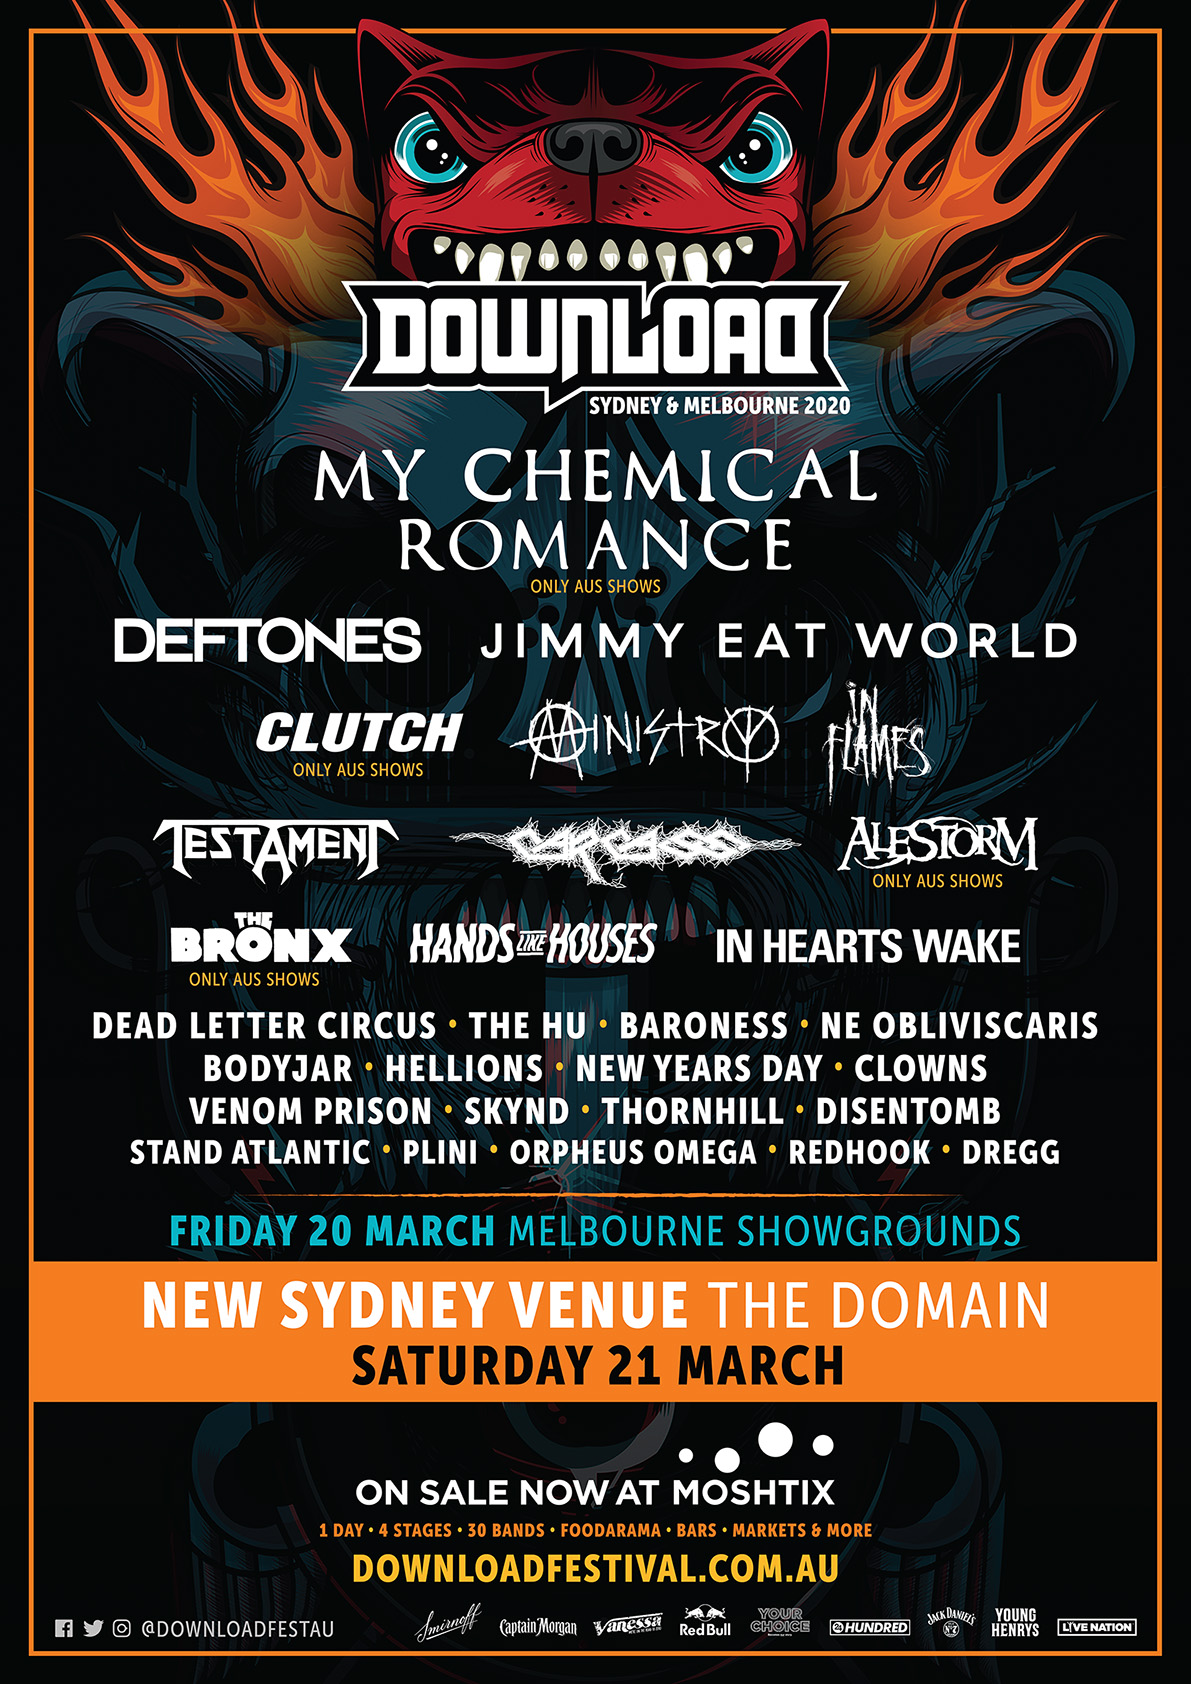 Download Festival Australia 2020 Dates Cities Lineup Tickets And More